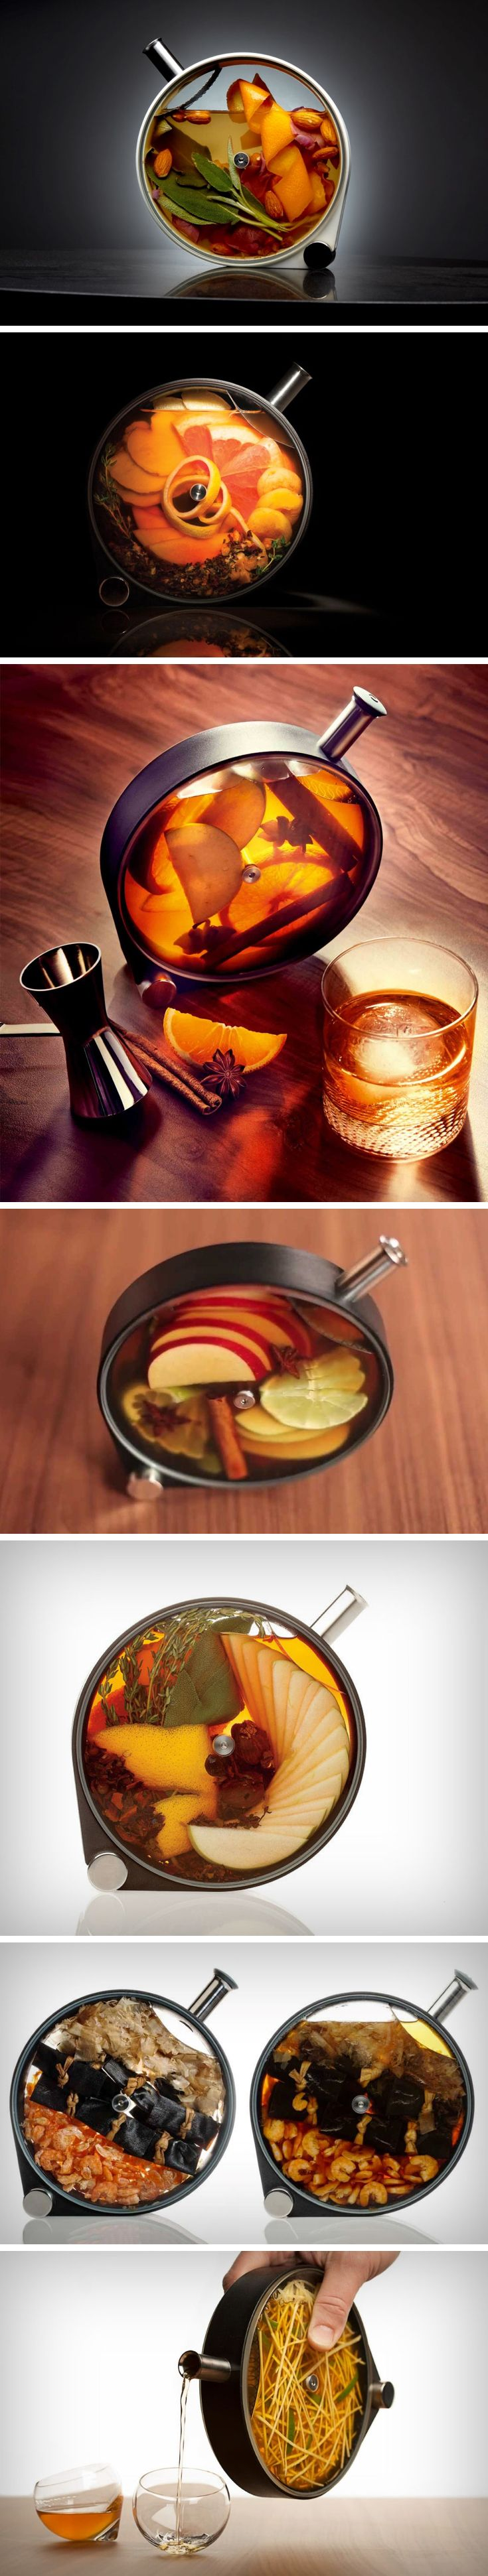 The Porthole Infuser does exactly what you think it does. Moreover, it looks great while doing it. Made for the most delicious and Instagram-worthy infusions, the Porthole can make everything from infused cocktails, to syrups, to oils, dressings, or even cold-brewed artisan teas and coffees. BUY NOW!